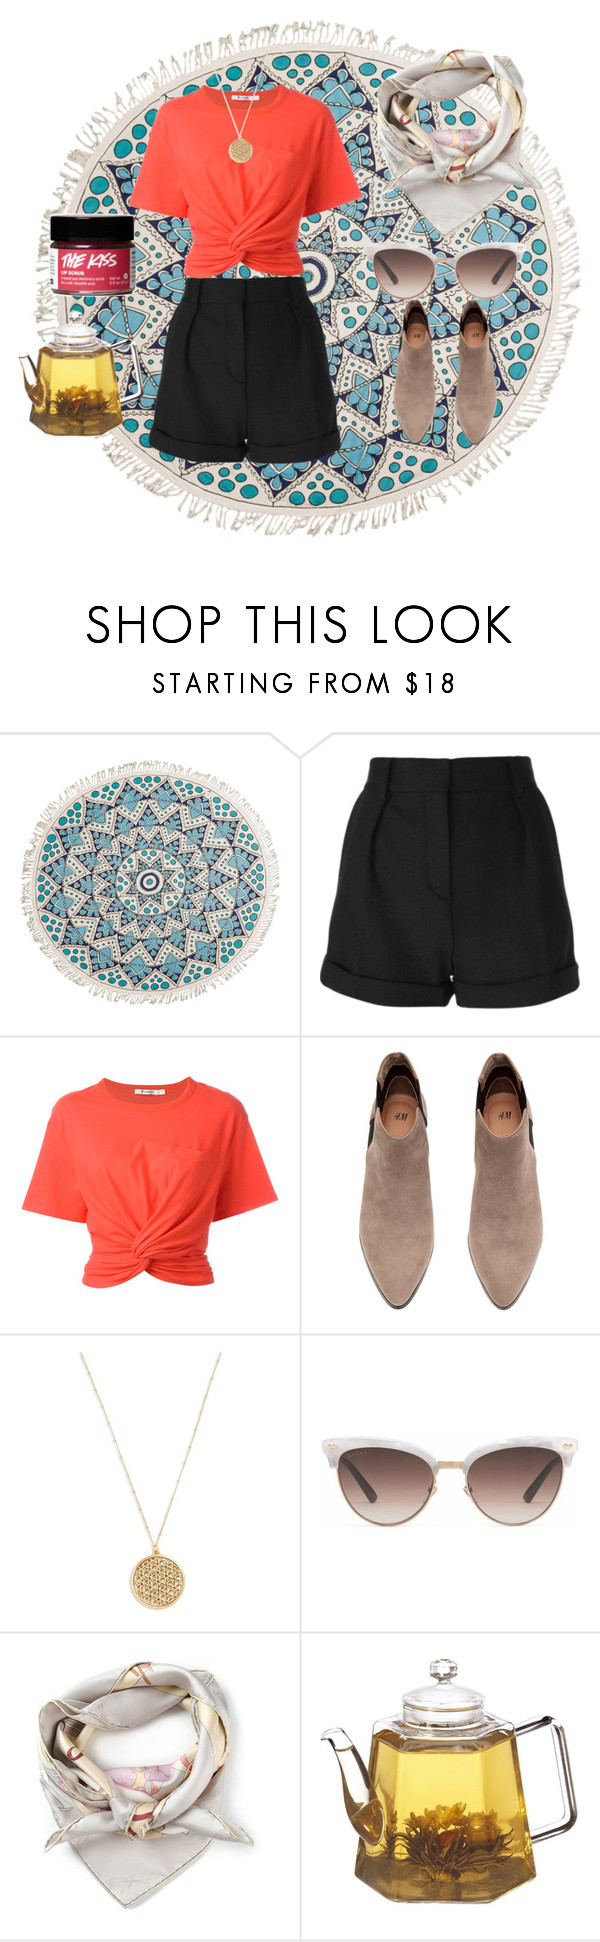 """waiting for summer"" by hayley-bear ❤ liked on Polyvore featuring Billabong, IRO, Alexander Wang, Vera Bradley, Gucci, Hermès, Summer, outfit and NightOut"